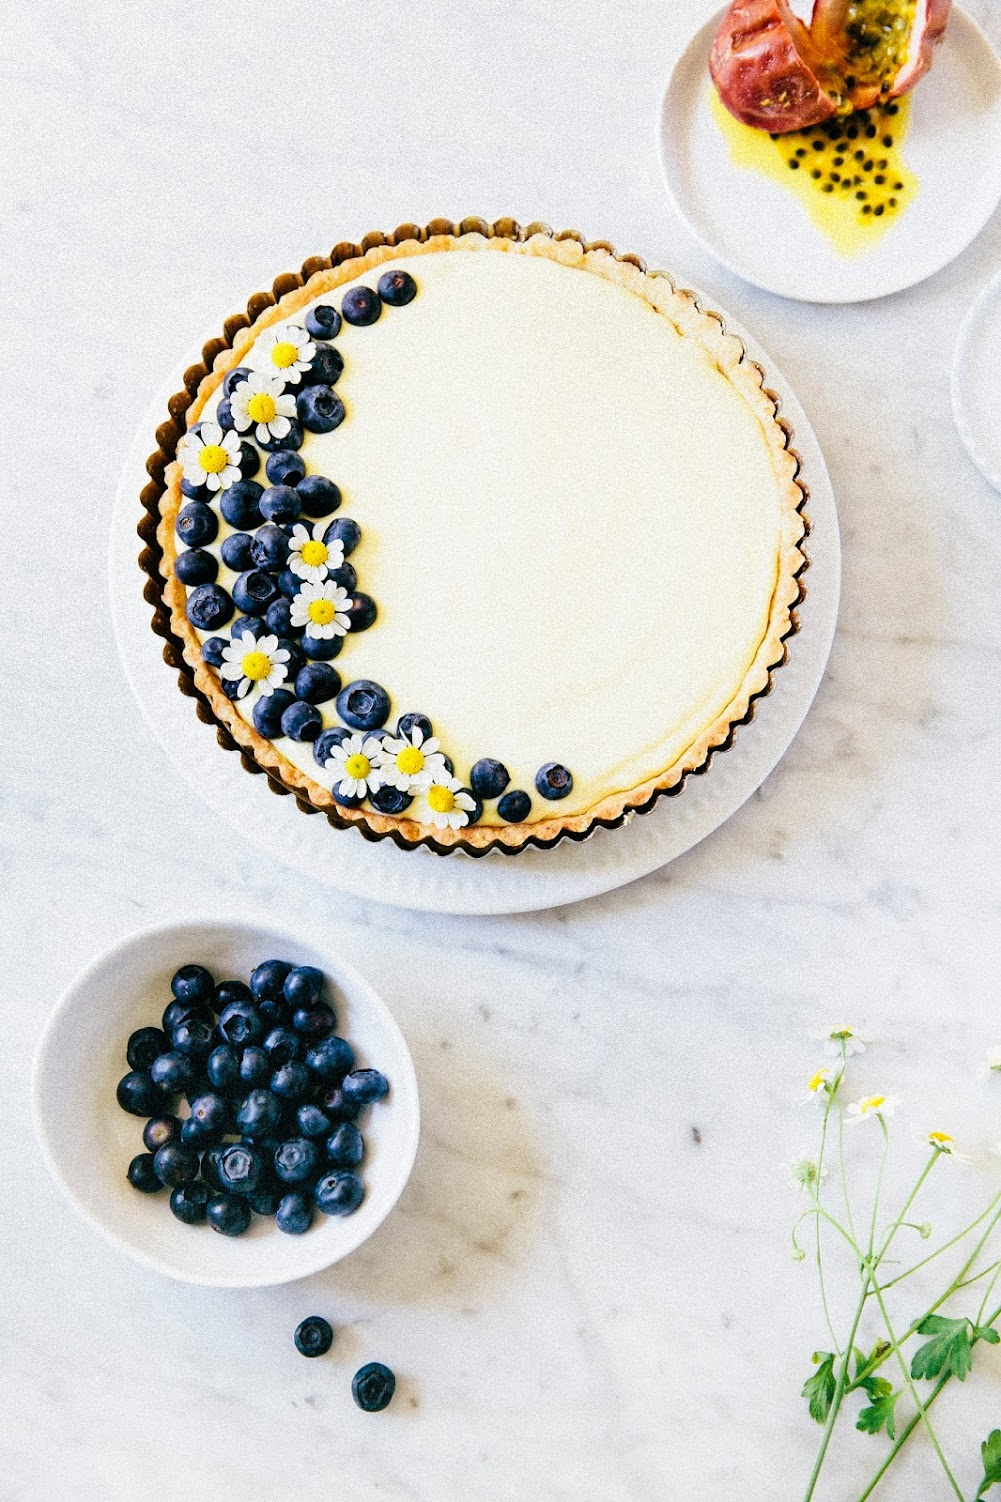 http://www.hummingbirdhigh.com/2016/07/passionfruit-and-blueberry-cream-tart.html